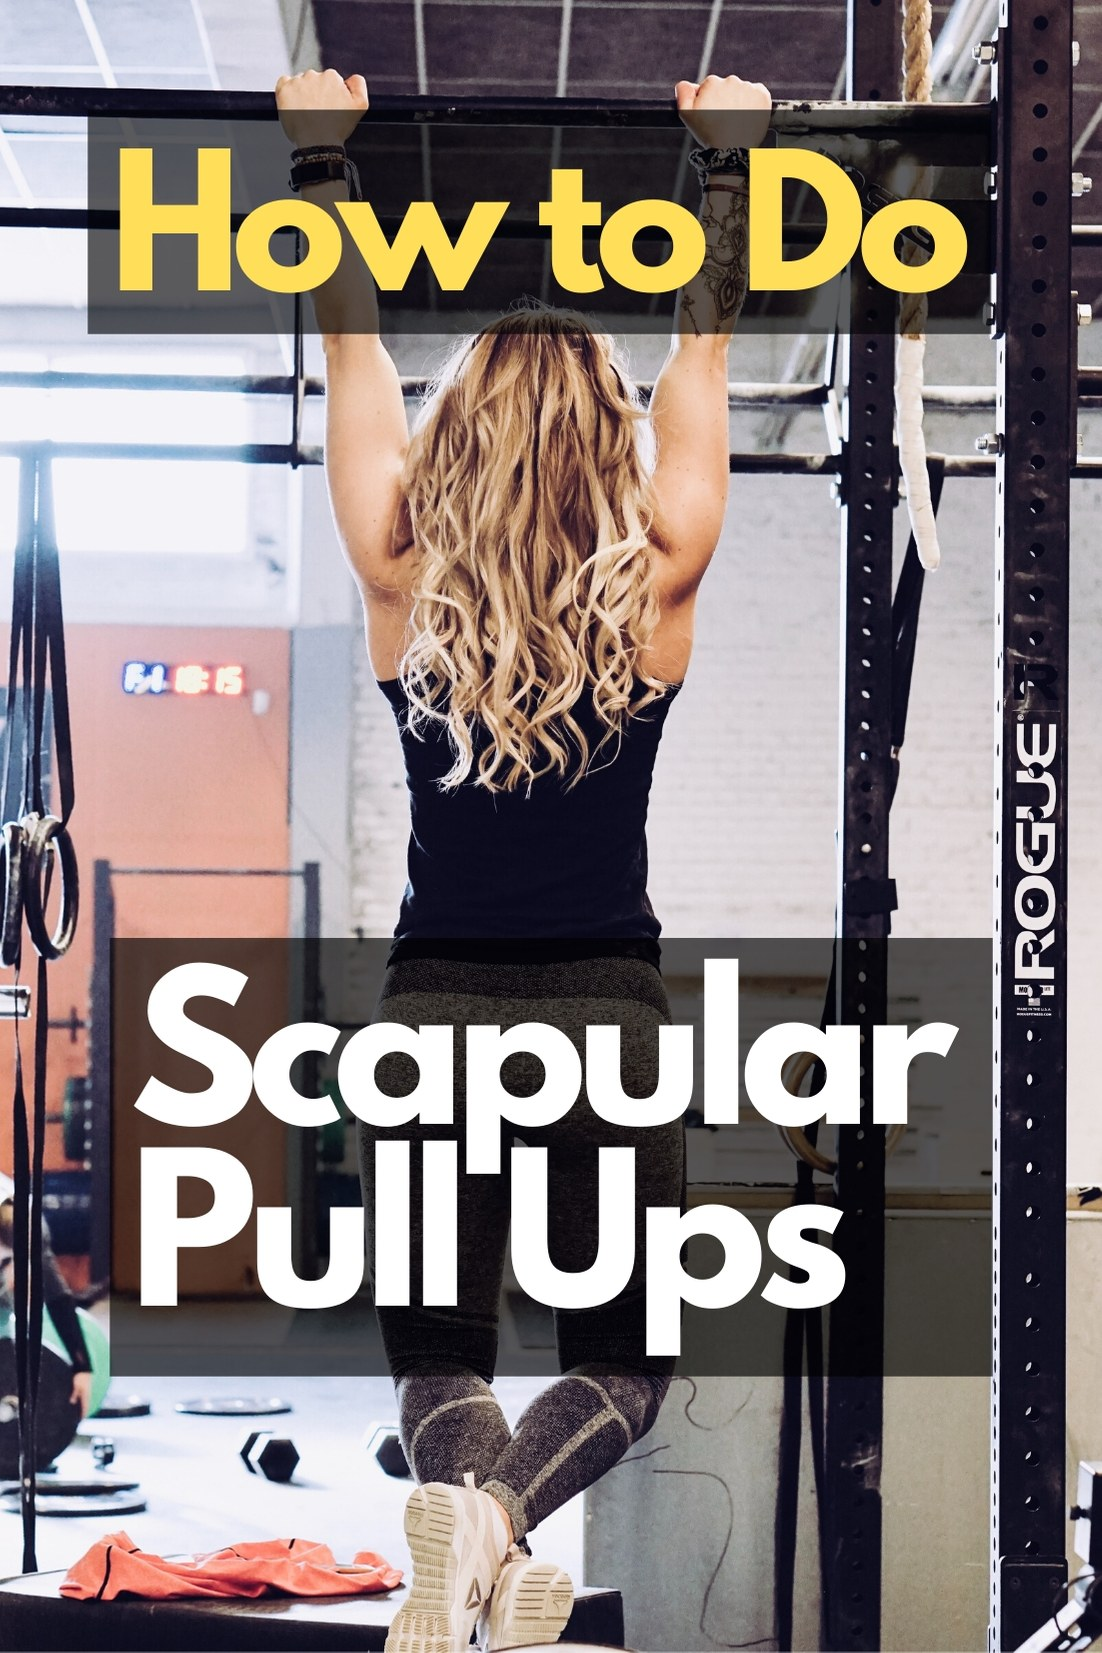 Scapular Pull Ups - How to do them